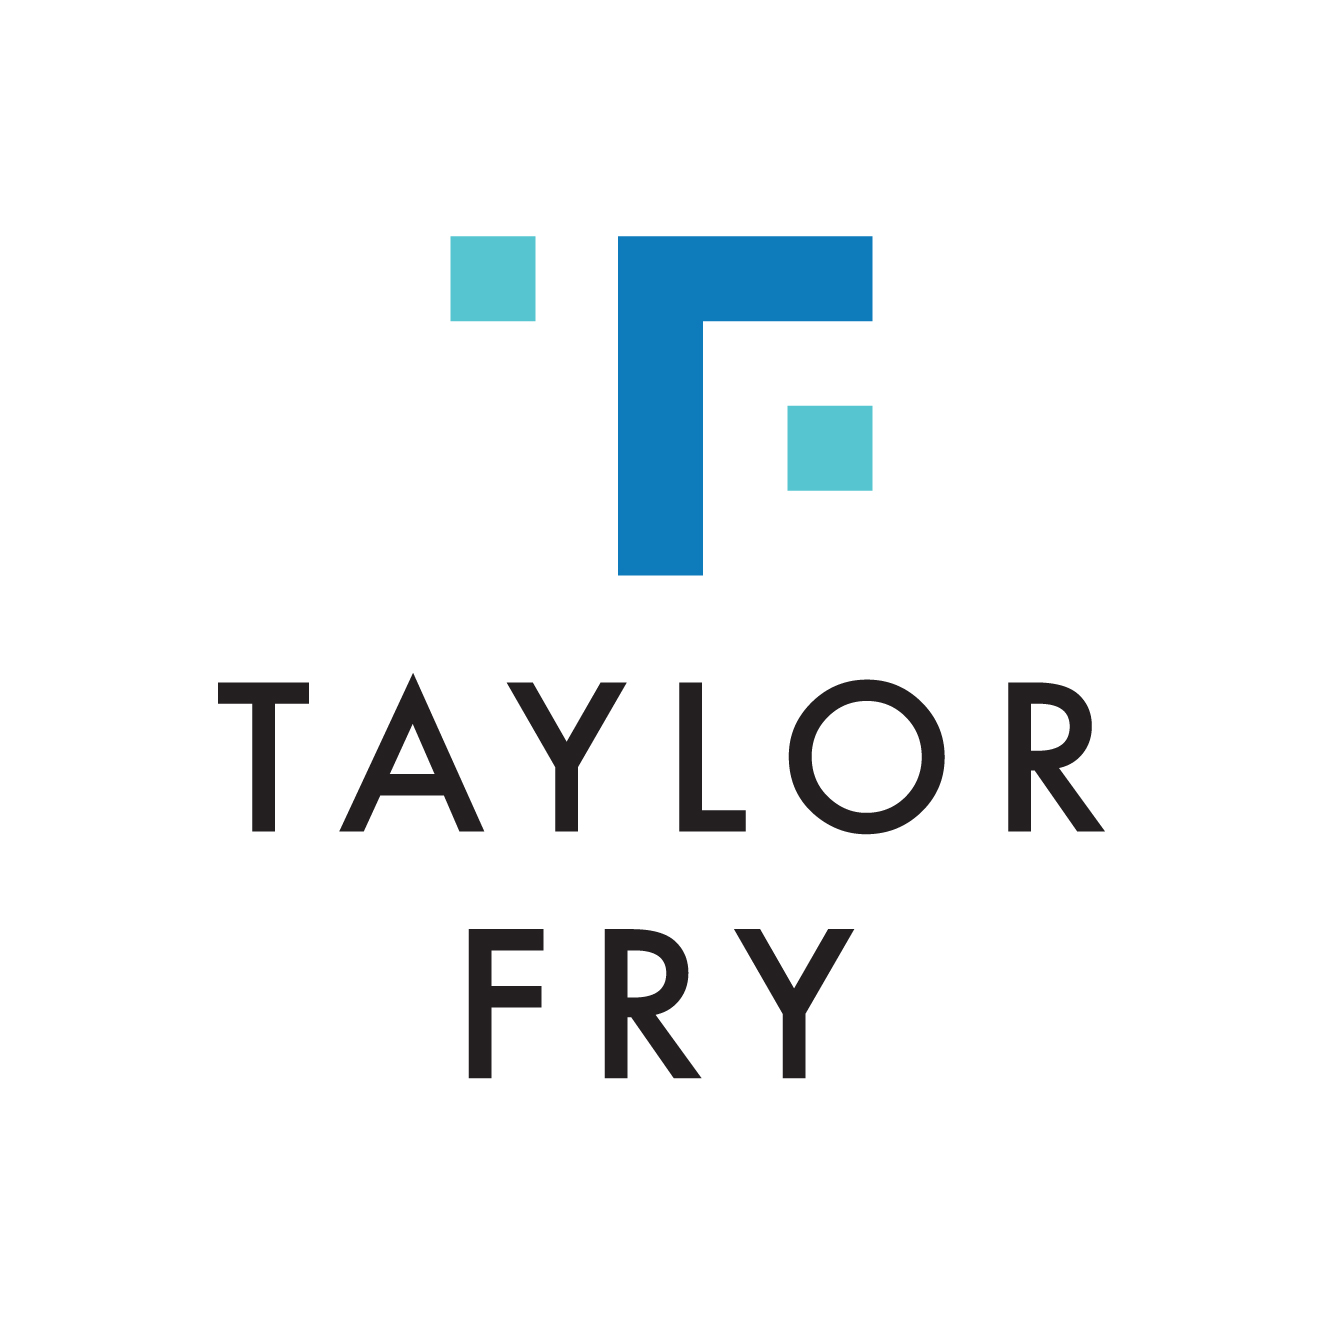 Taylor-Fry_highres_SQUARE